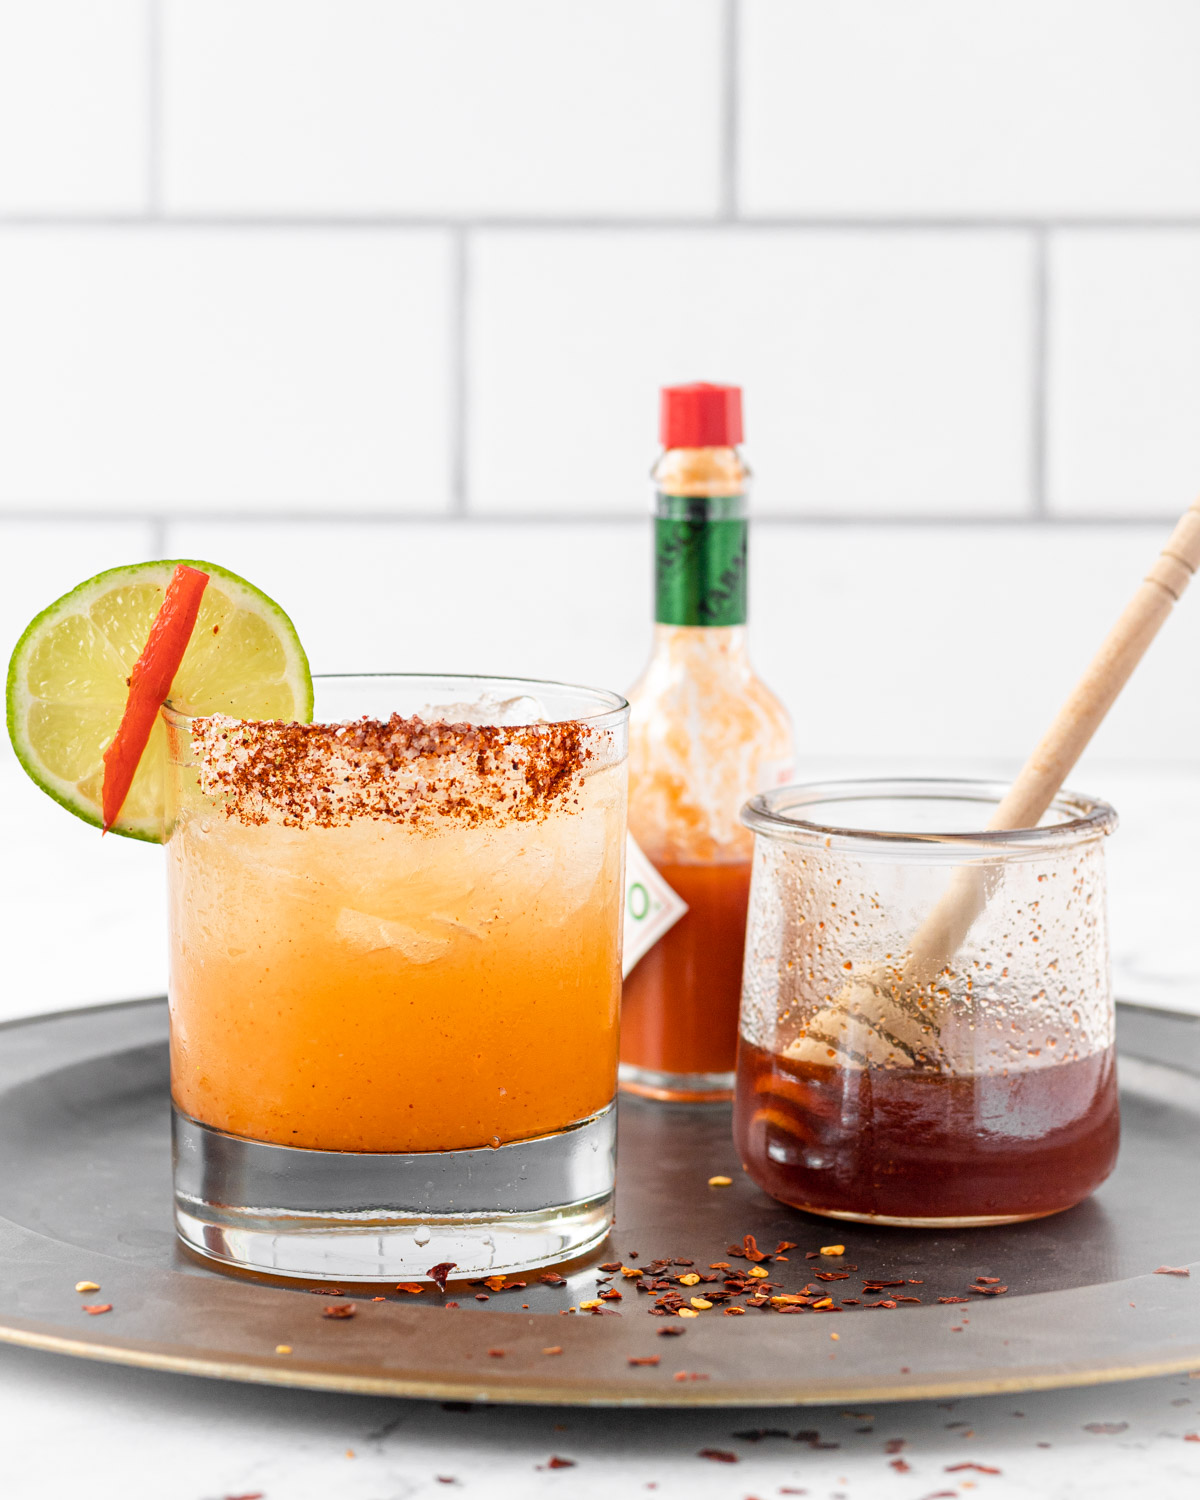 Hot honey margarita on a tray with a bottle of Tabasco and jar of hot honey.